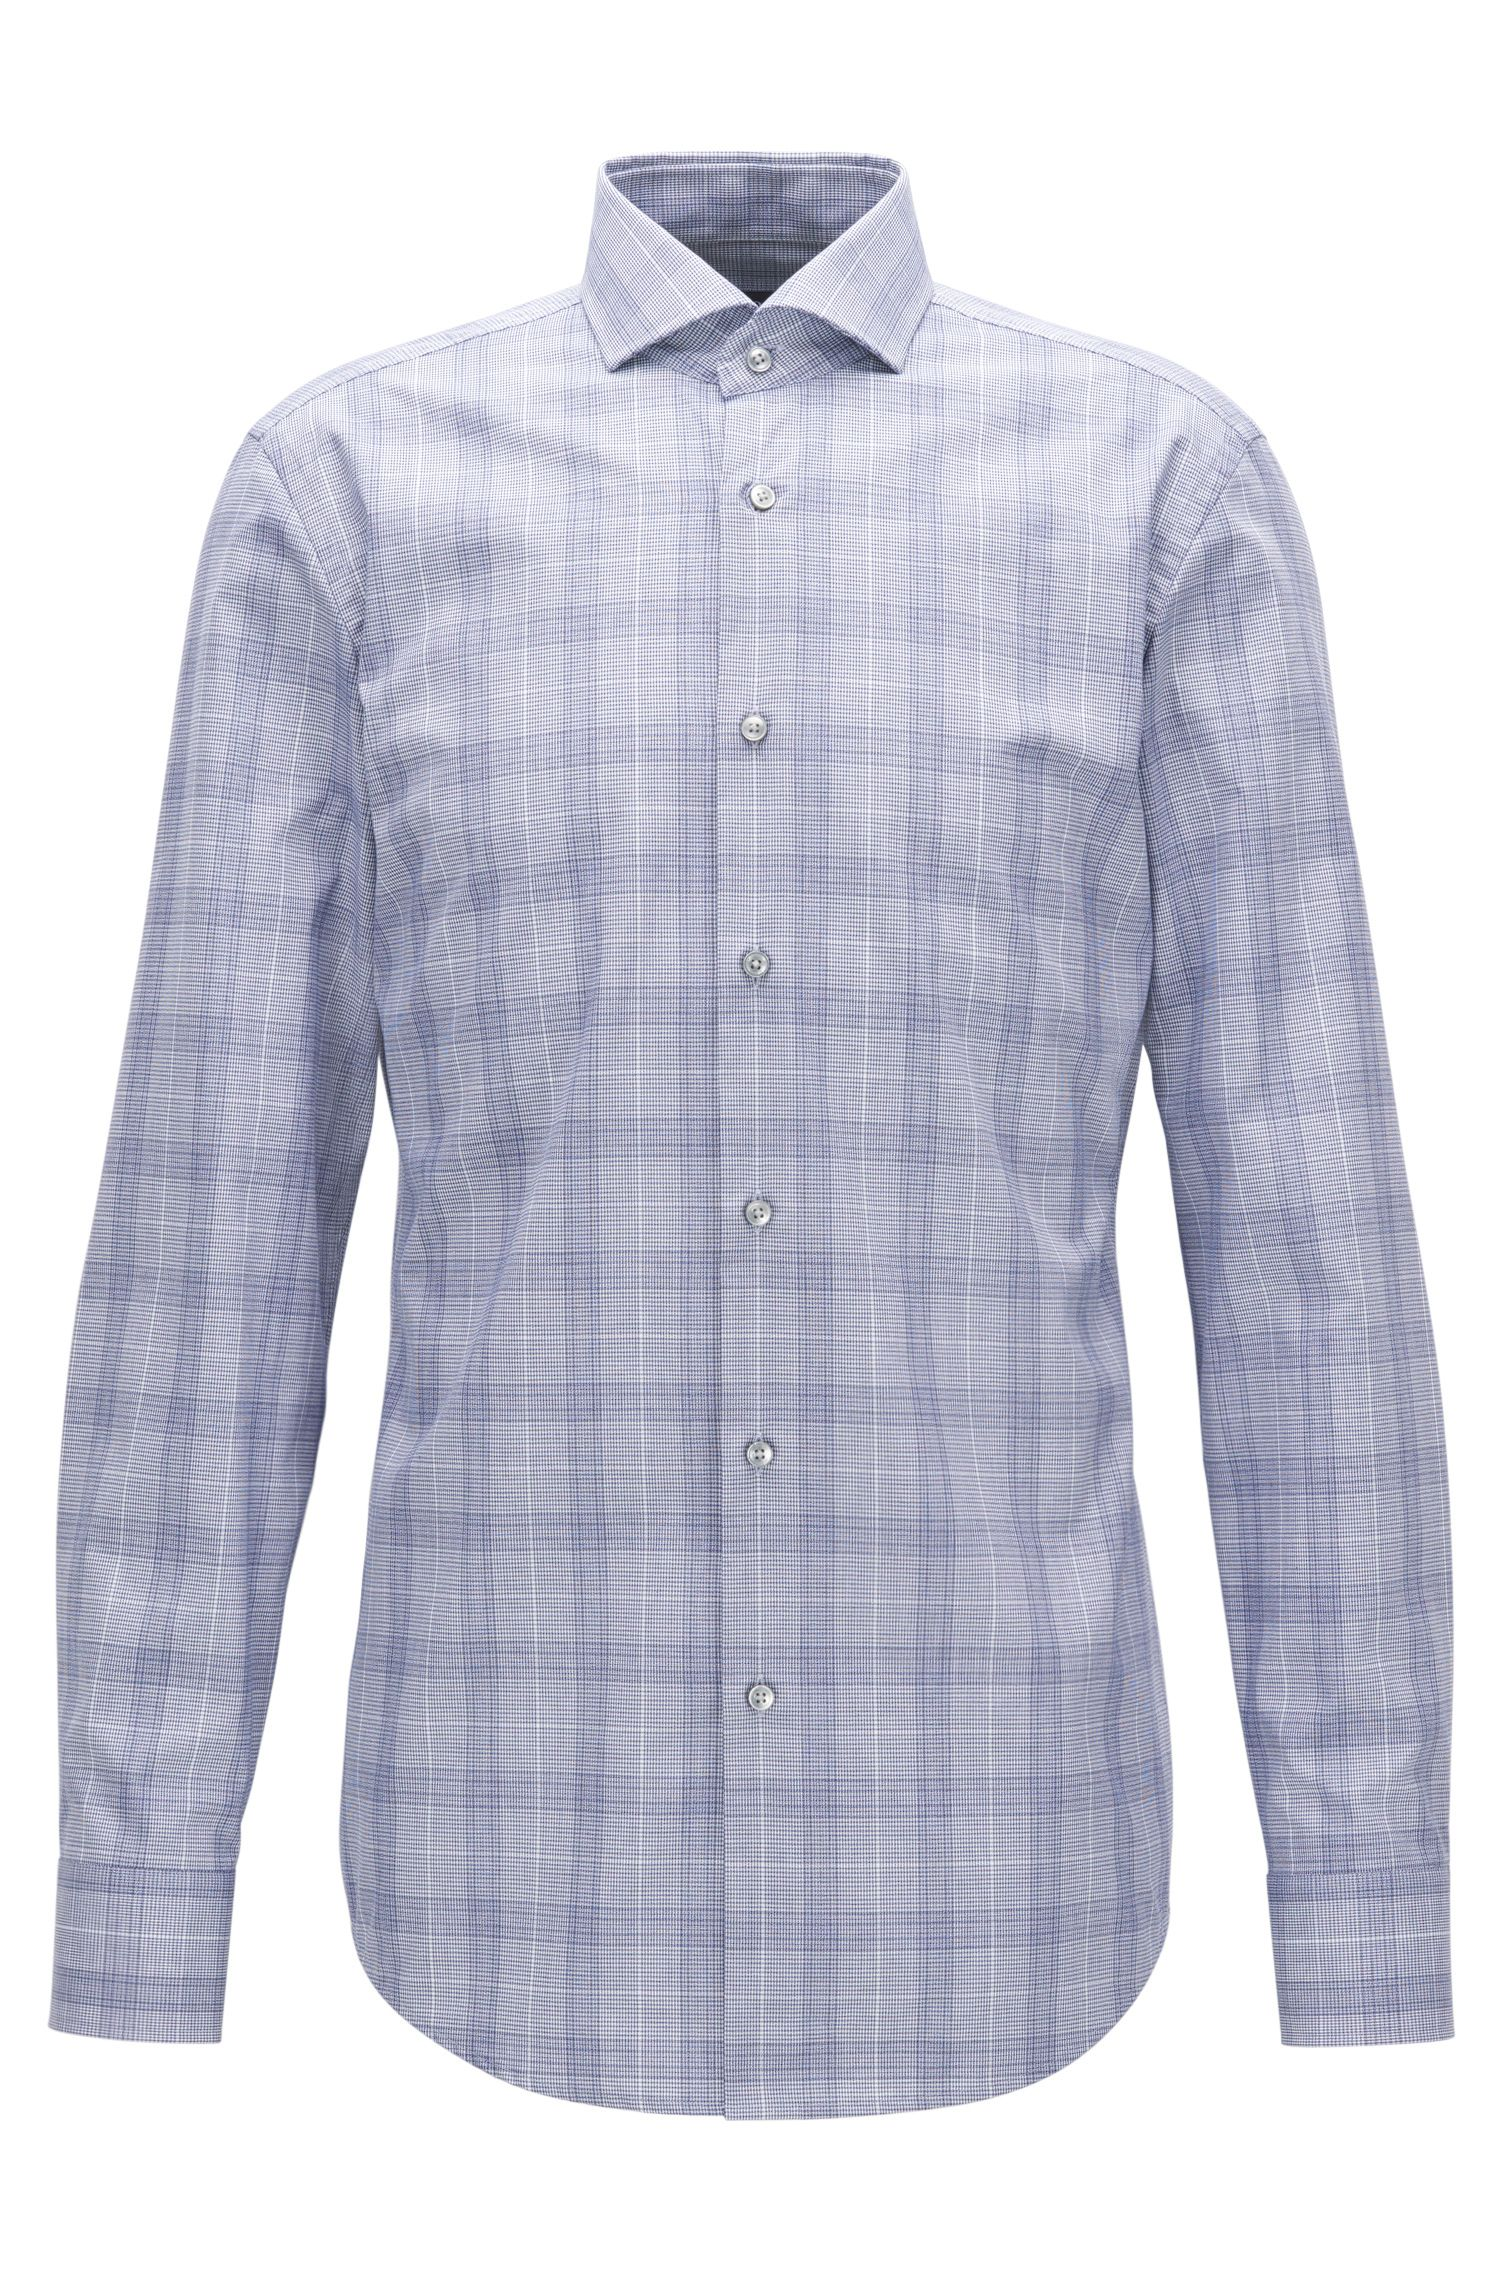 Windowpane Cotton Dress Shirt, Slim Fit | Jason